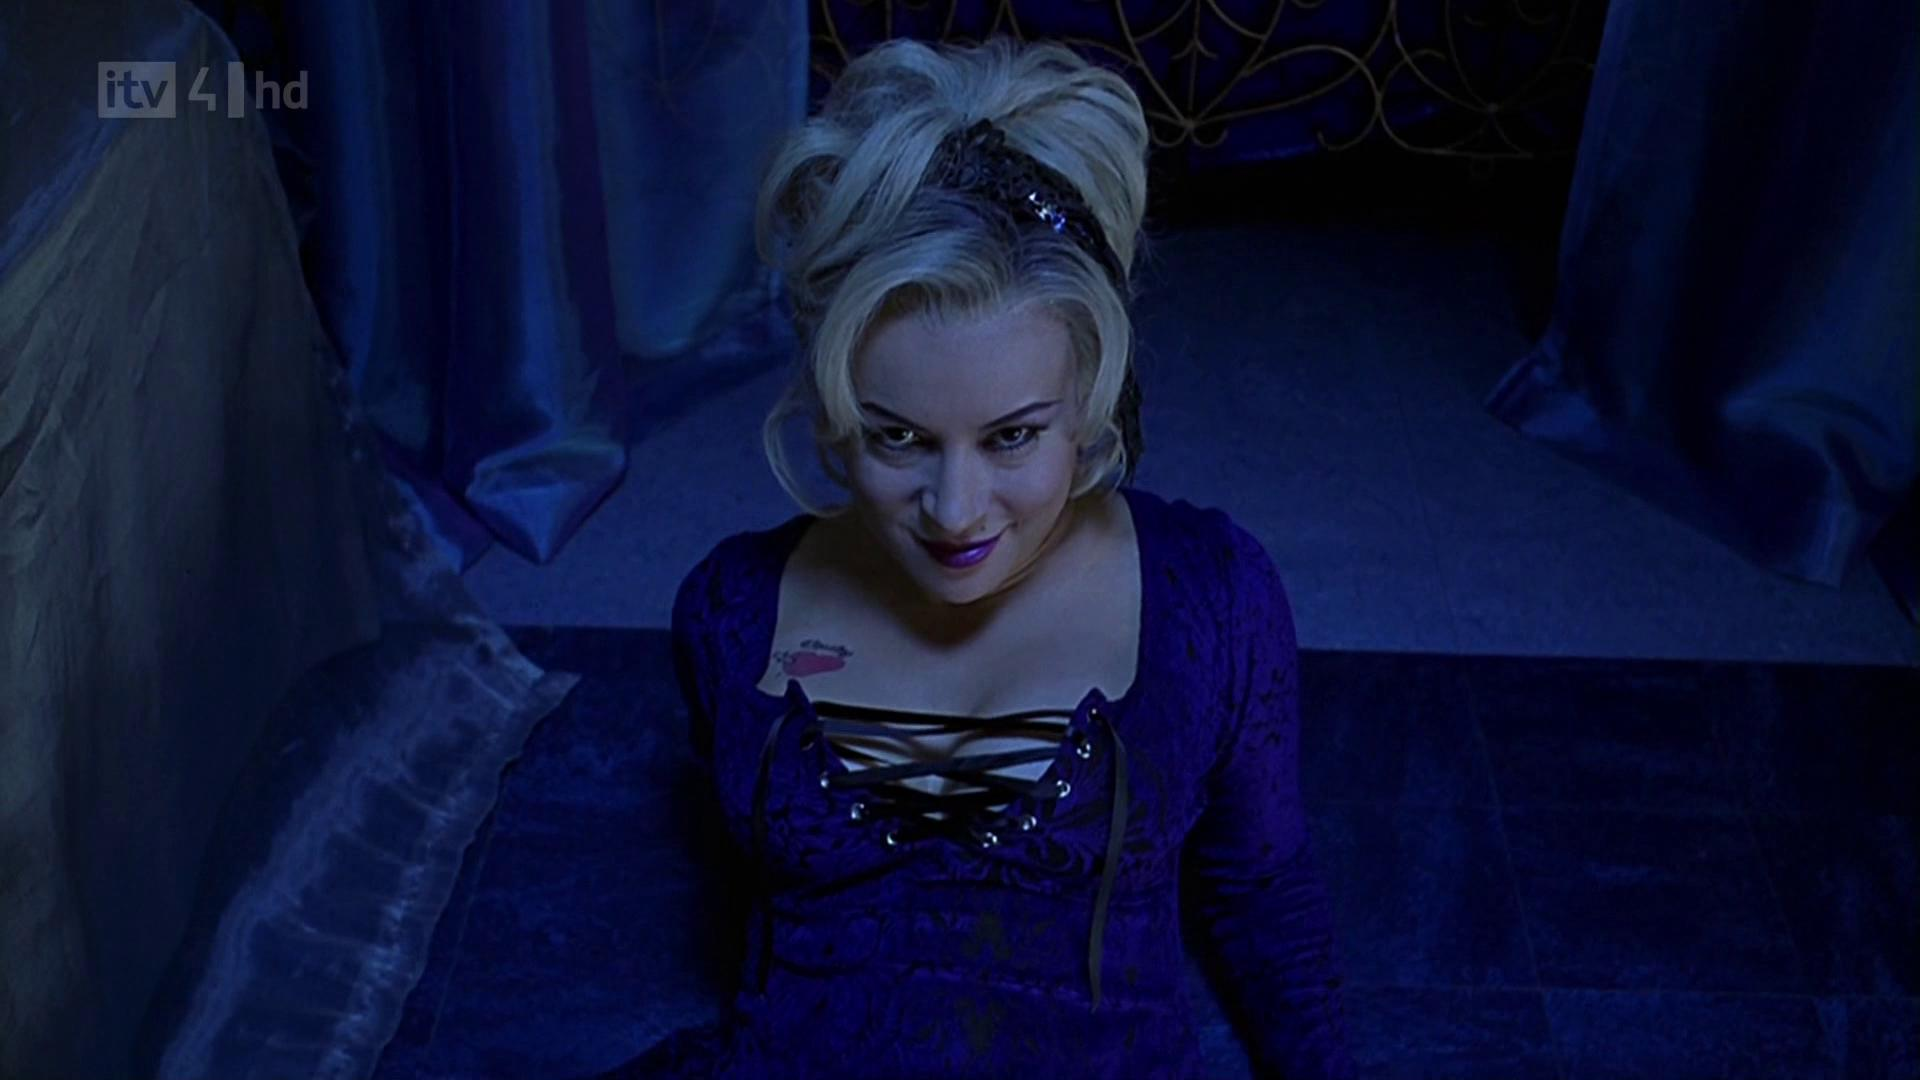 Bride Of Chucky - Jennifer Tilly Image (28949738) - Fanpop